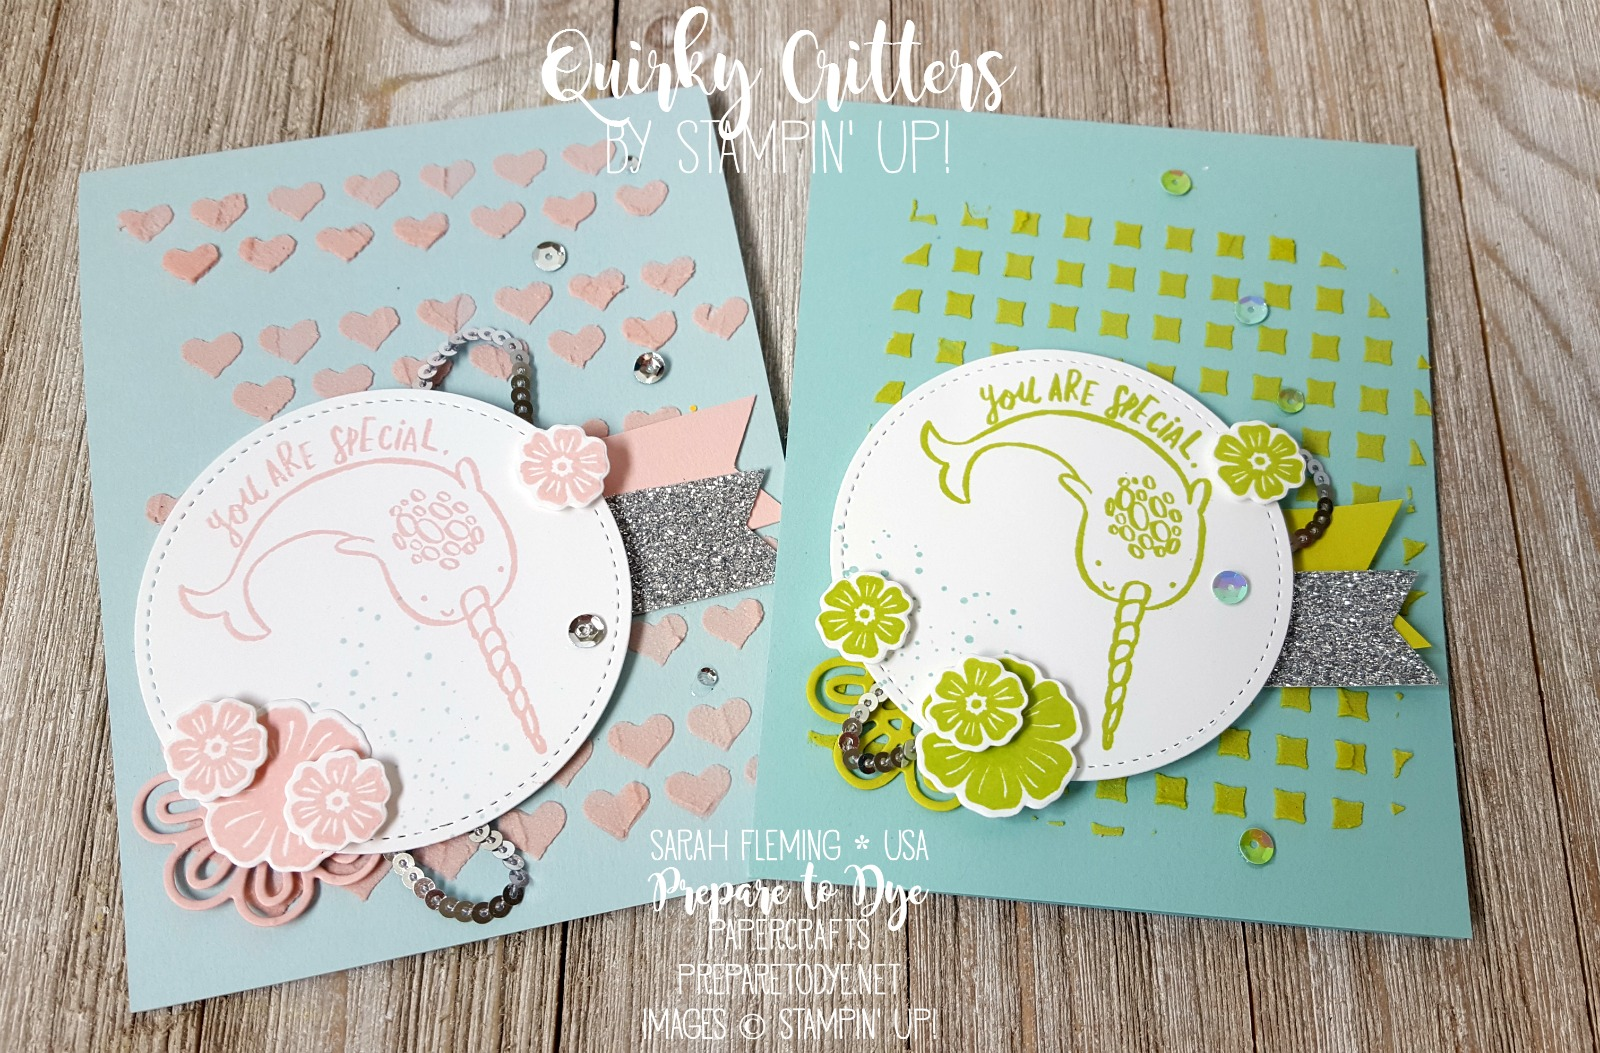 Stampin' Up! Quirky Critters, embossing paste, Beautiful Bouquet bundle, Support Ribbon framelits, silver mini sequin trim - Kylie's International Blog Highlights - handmade baby card - Sarah Fleming - Prepare to Dye Papercrafts